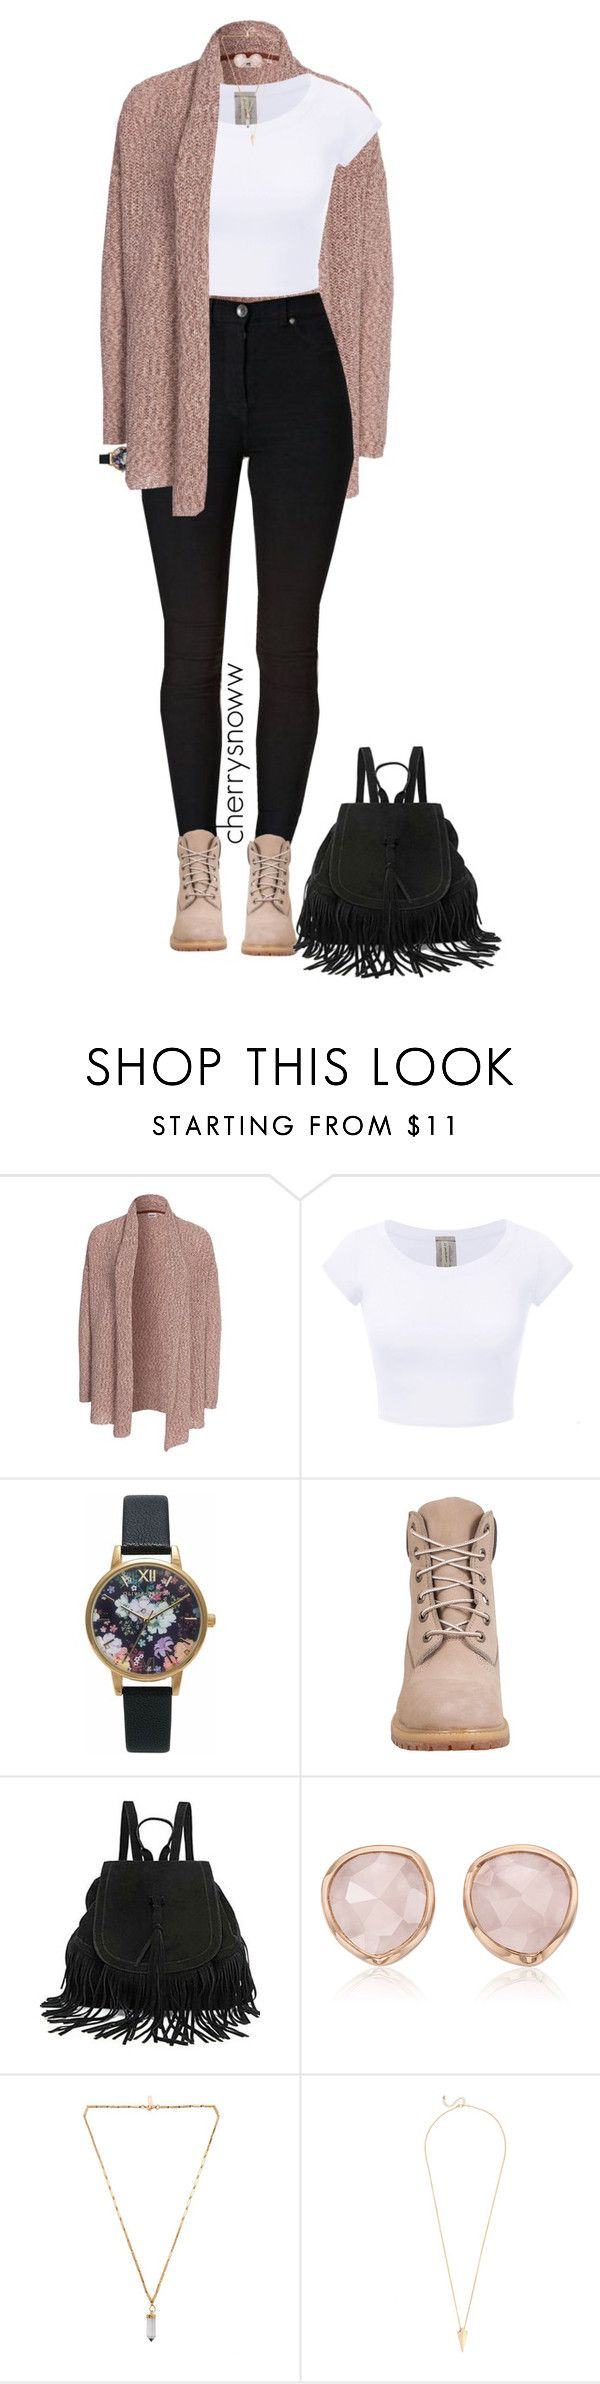 """""""Cute casual chic fall outfit"""" by cherrysnoww ❤ liked on Polyvore featuring Object Collectors Item, Olivia Burton, Timberland, The Code, Monica Vinader and Isabel Marant"""